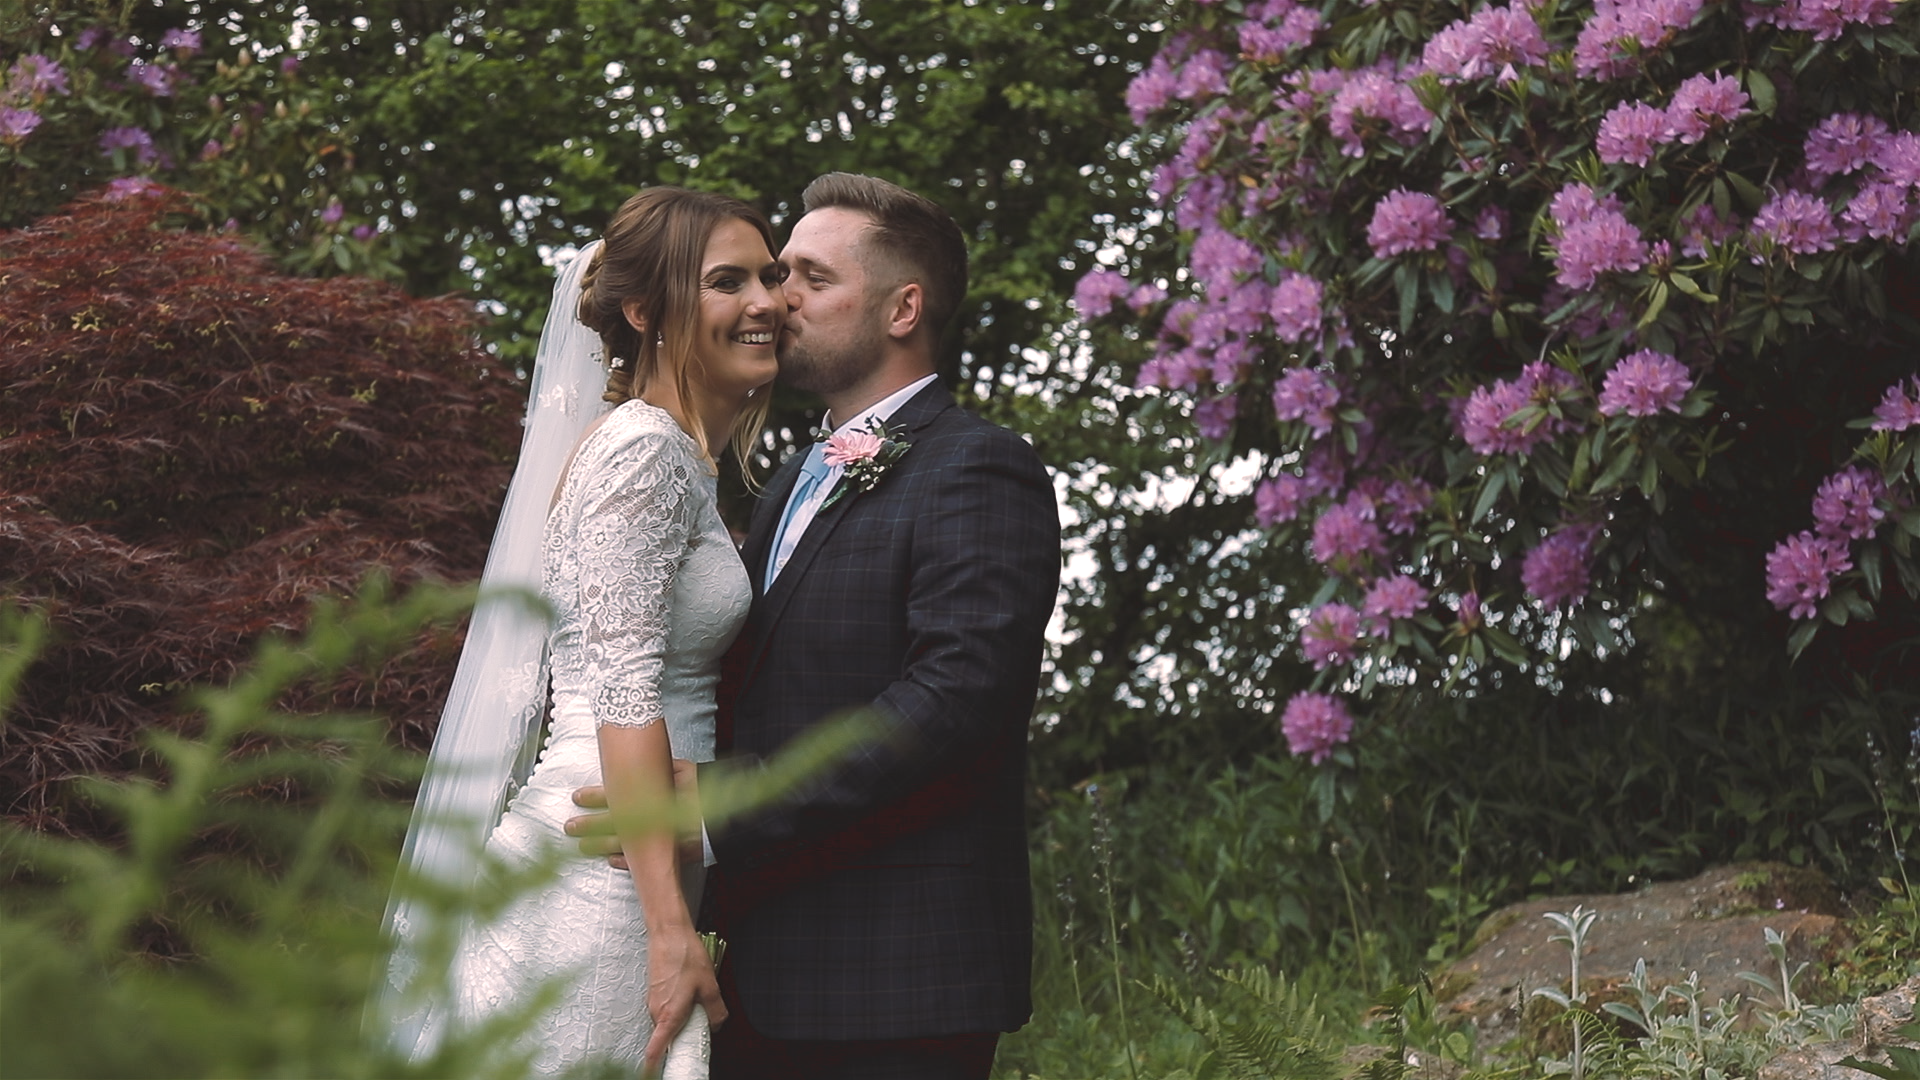 Bride and Groom surrounded by flowers